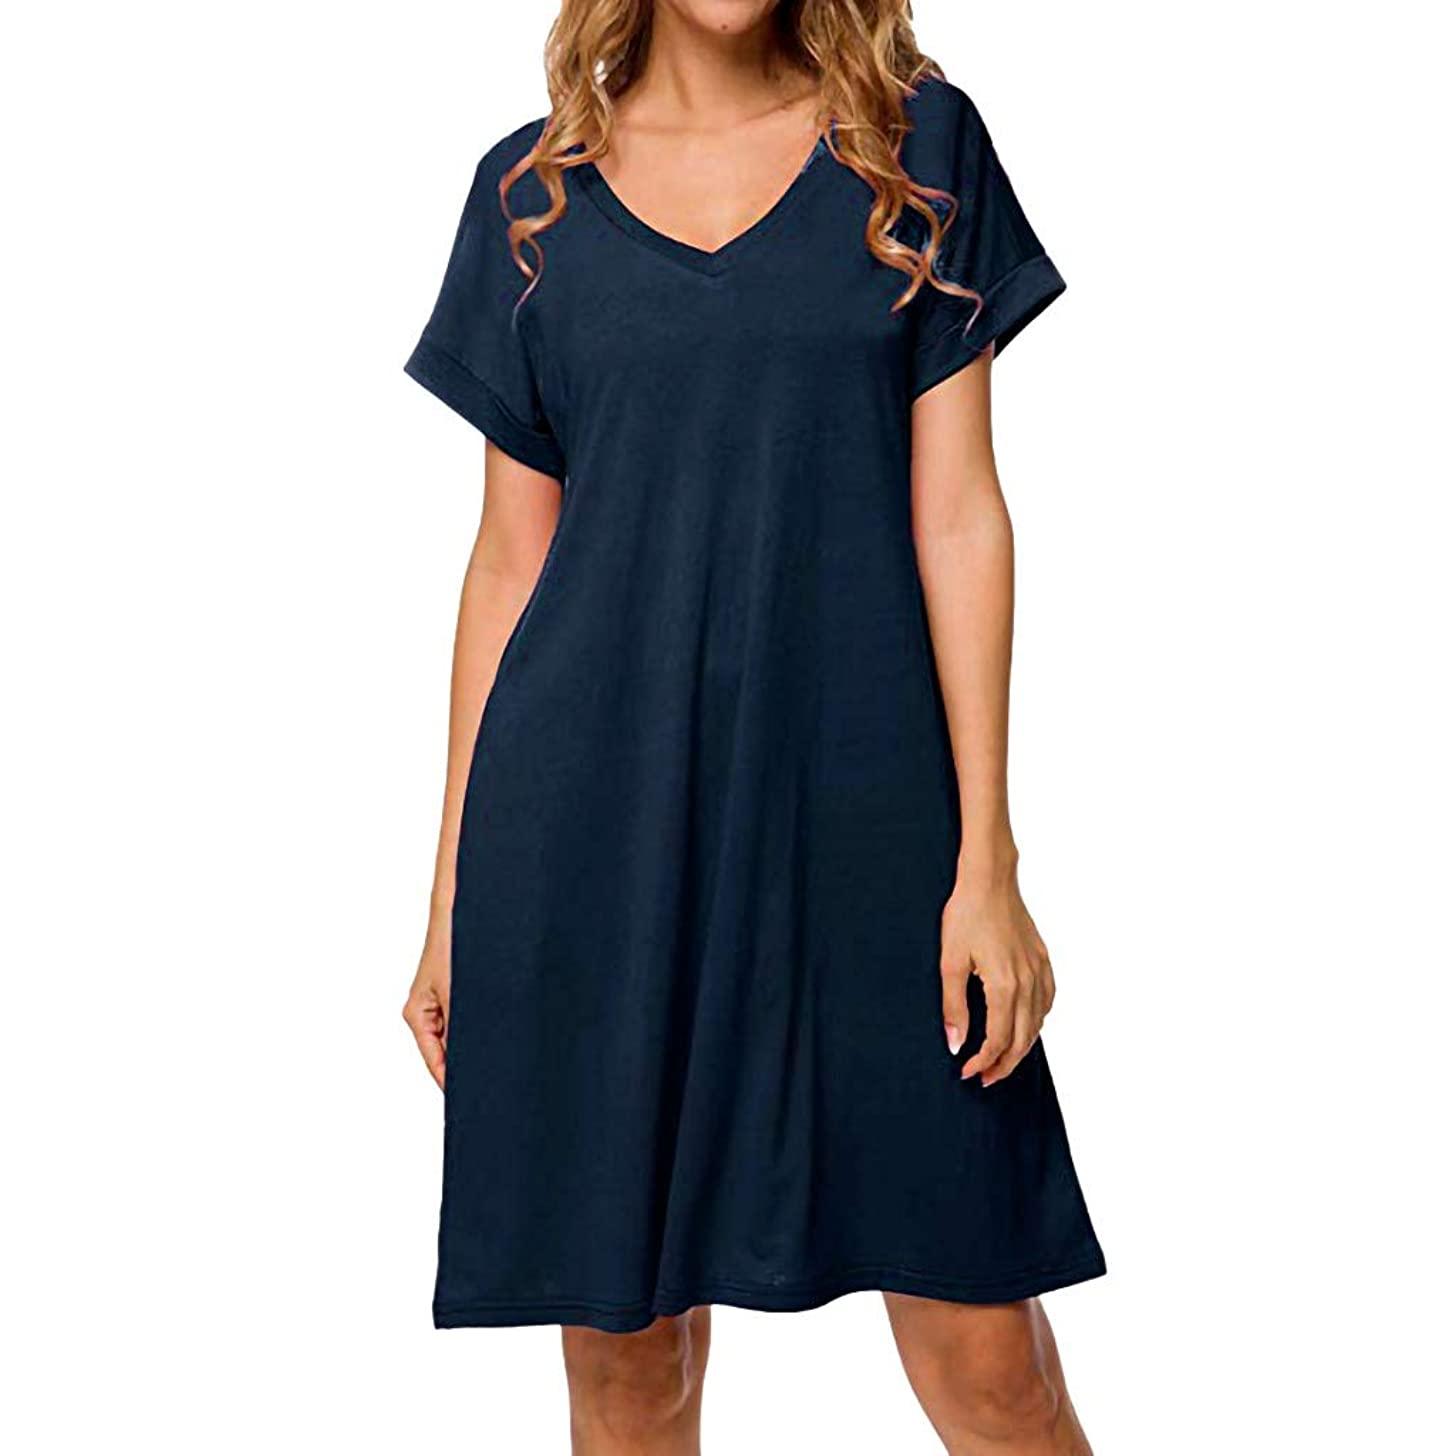 Women's Summer Casual T Shirt Dresses Short Sleeve Swing Dress with Pockets V Neck Solid Loose Dress CapsA